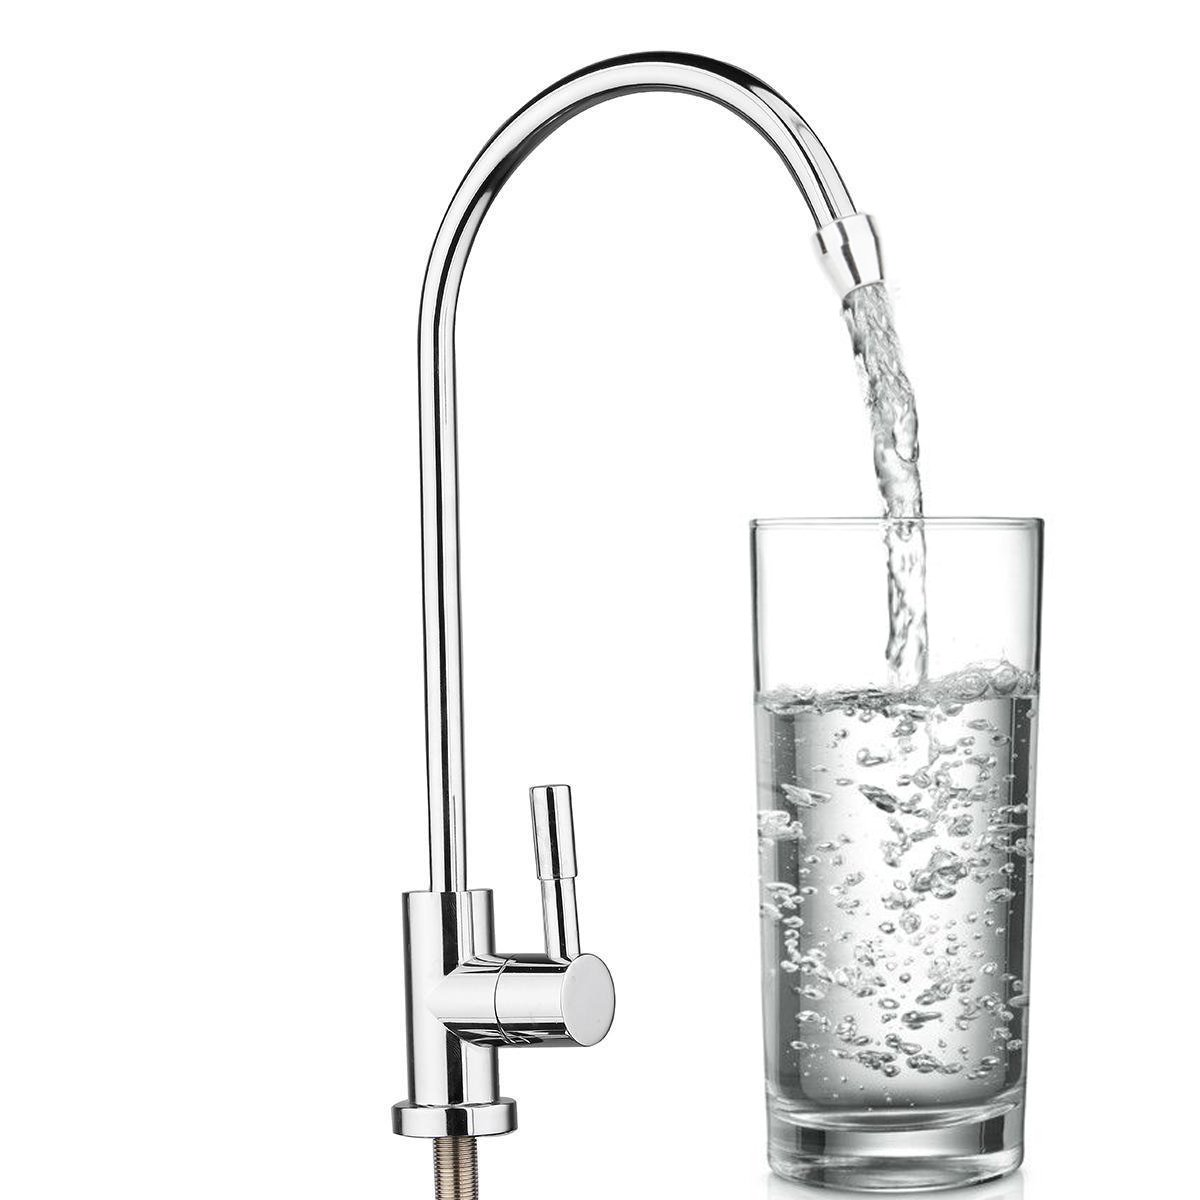 KINWAT 1pc 304 Stainless Steel Water Filter Faucet 1/4'' 360 Degree Chrome Osmosis Drinking RO Finish Reverse Sink Faucets